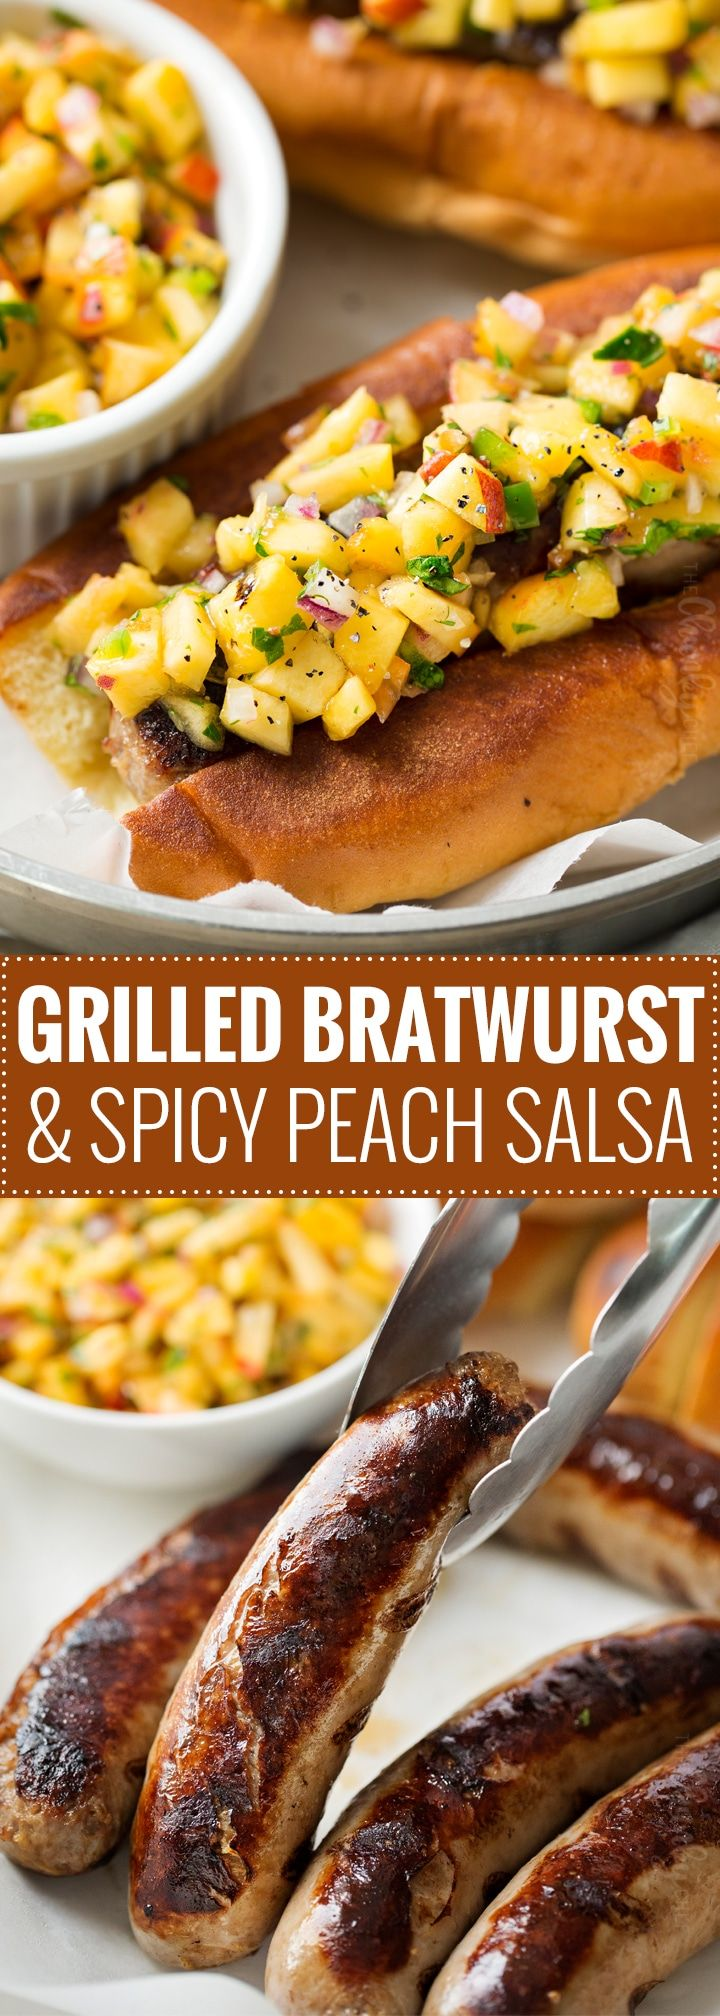 Grilled Bratwurst with Spicy Peach Salsa | No more boring brat toppings here... serve up your traditional grilled beer brats with this habanero peach salsa and prepare to be amazed! Plus, tips for how to serve these brats when grilling isn't an option. | http://thechunkychef.com